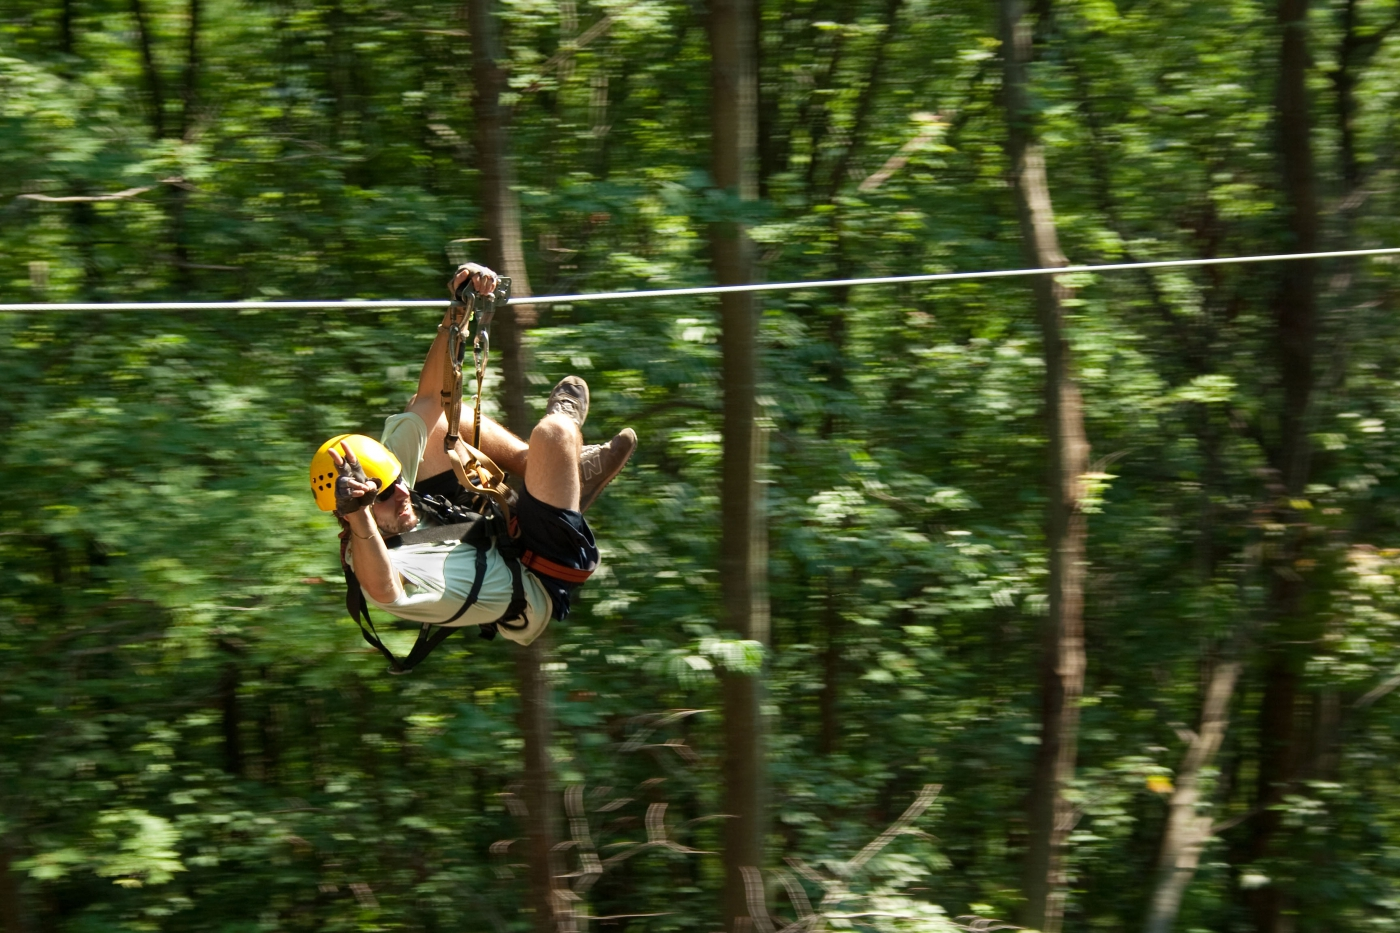 Zip through the tree tops!